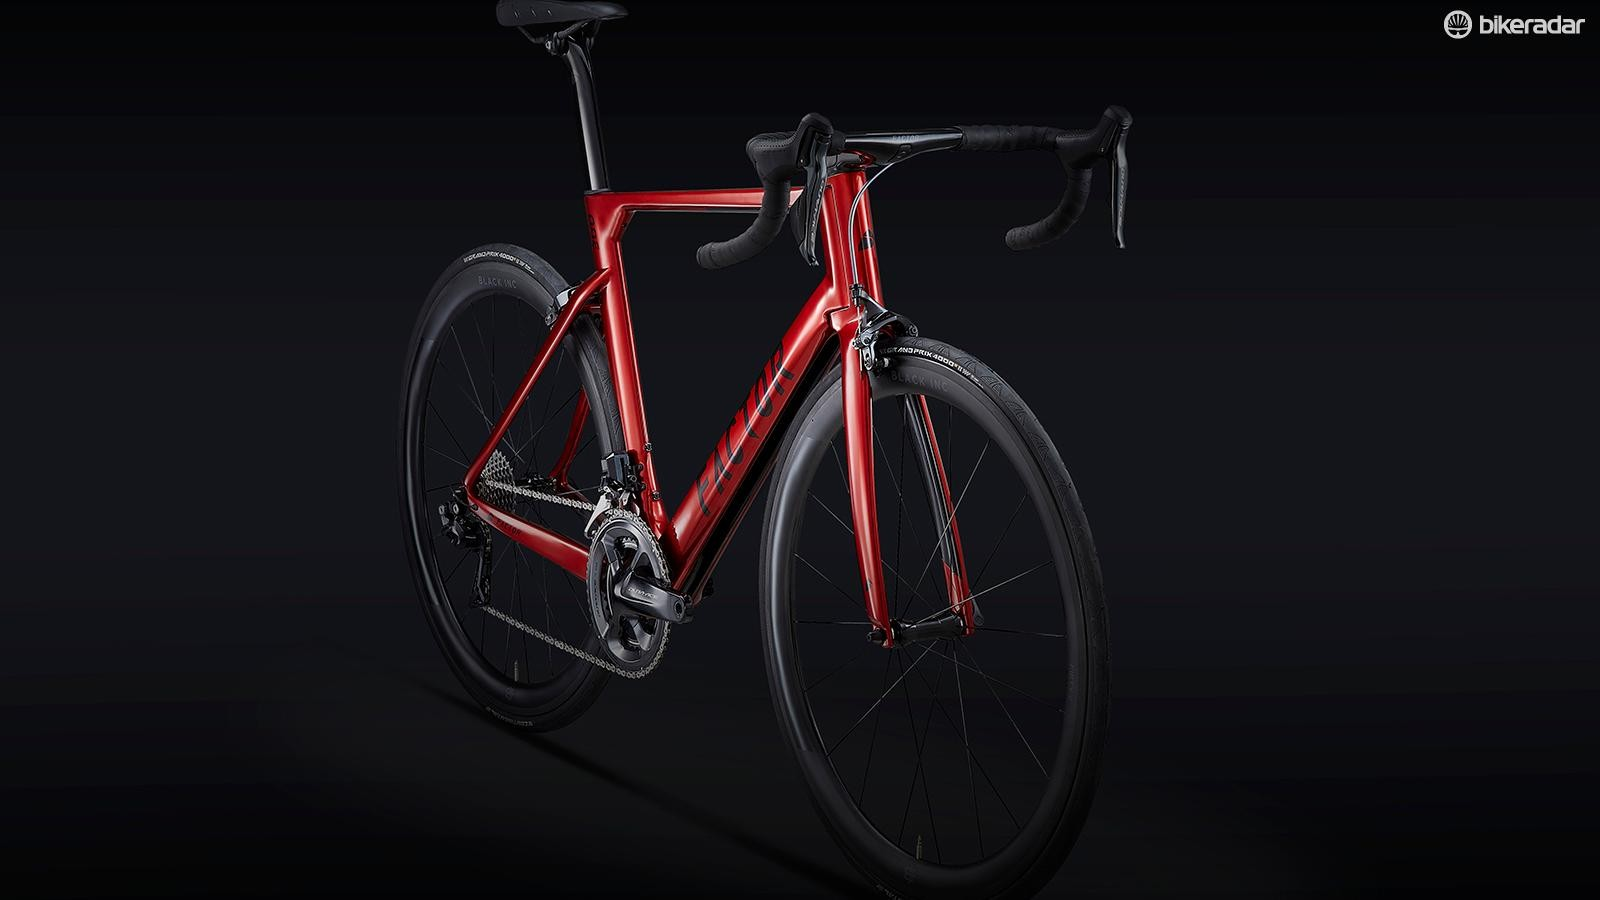 Wide Stance forks and seatstays are designed to improve aerodynamics and stiffness